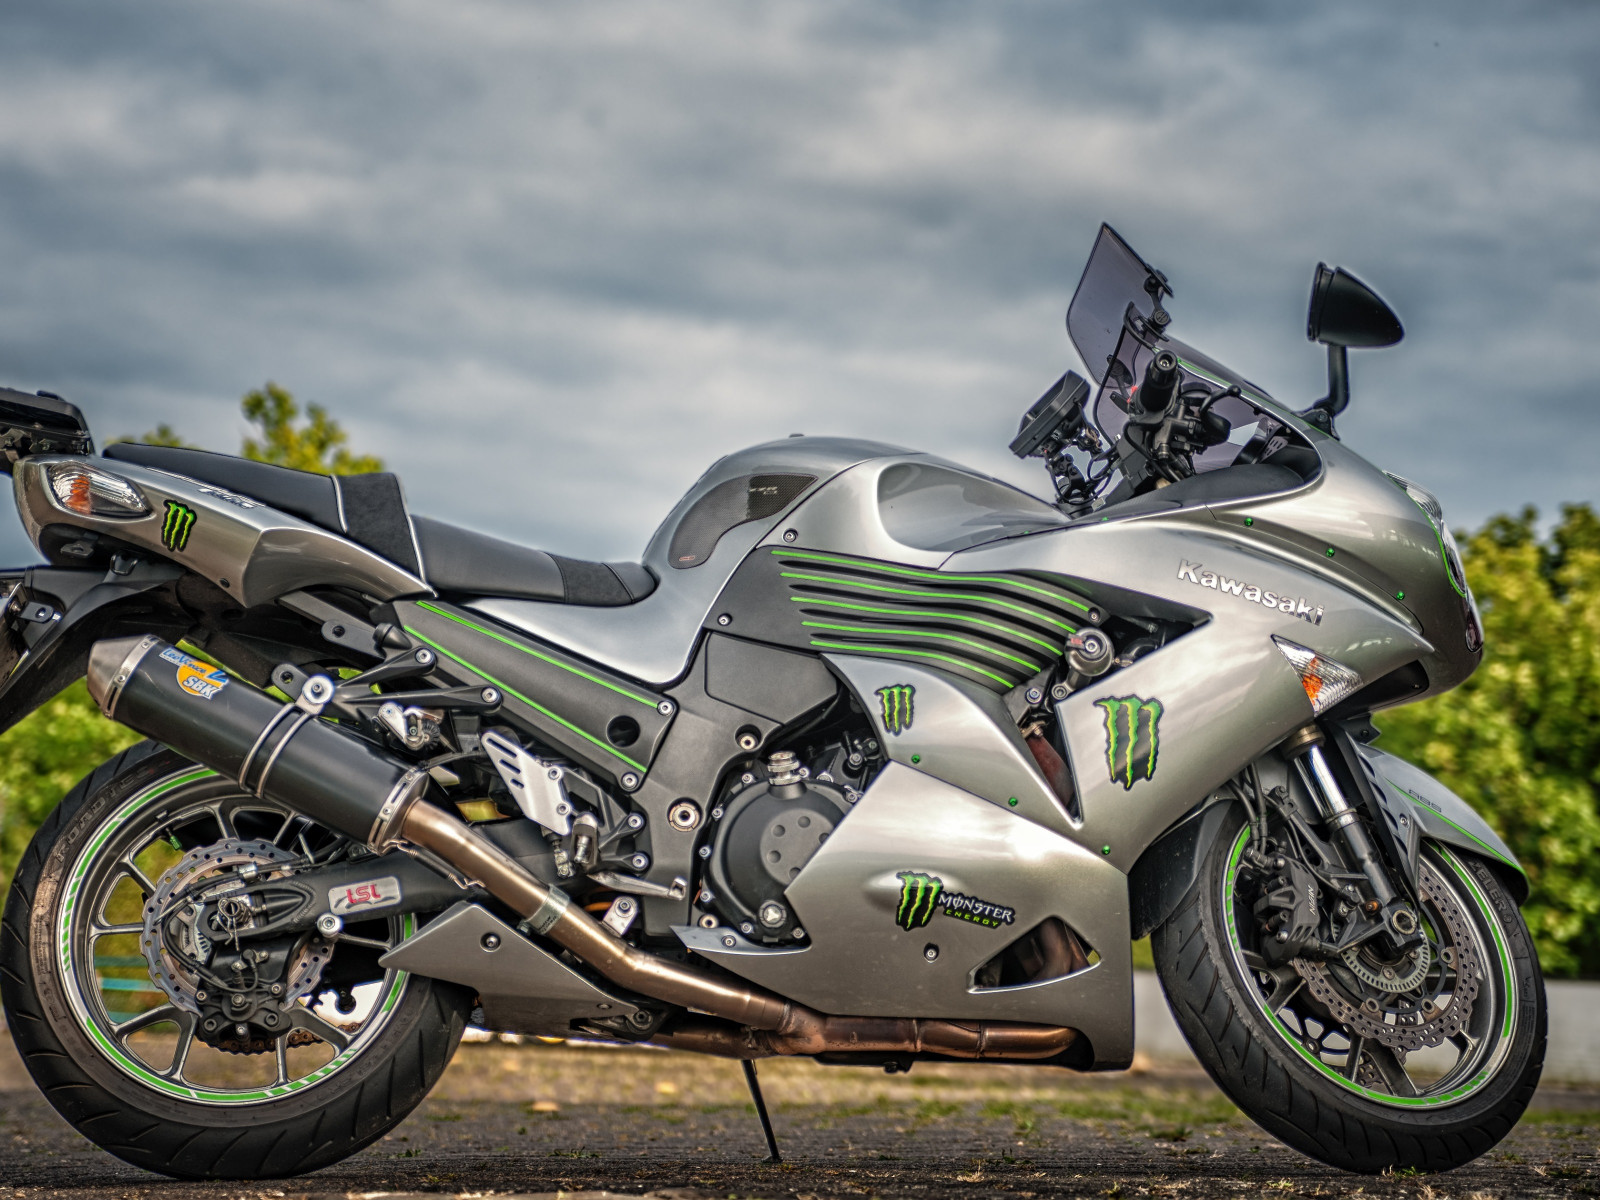 Kawasaki ZZR1400 | 1600x1200 wallpaper